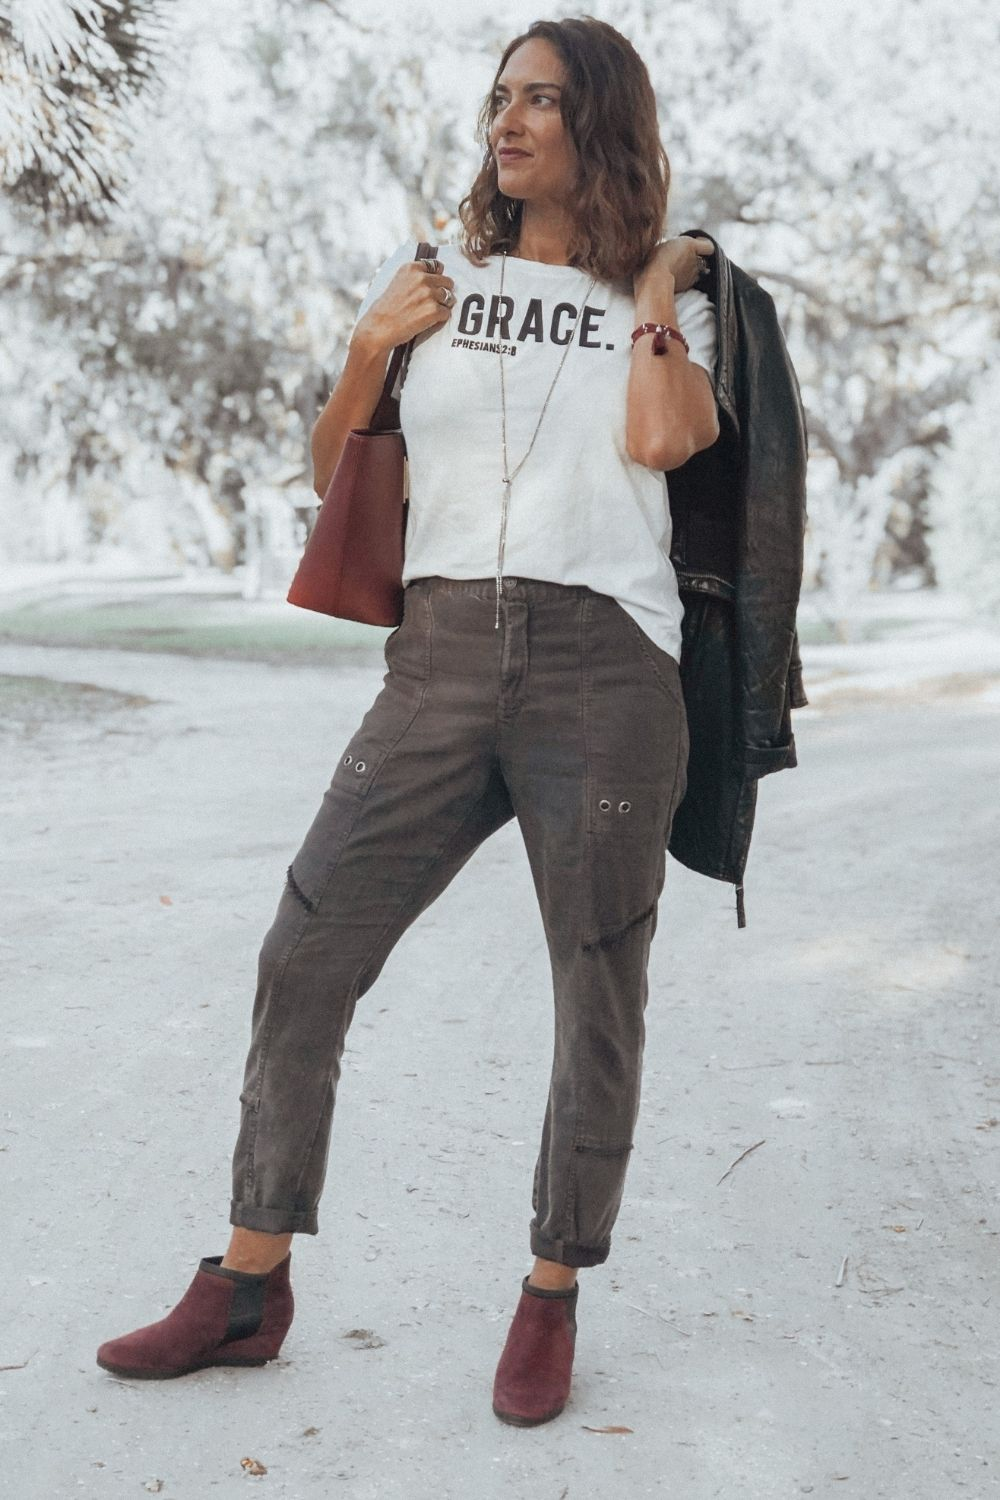 Chrissy of granola and grace in all neutral look